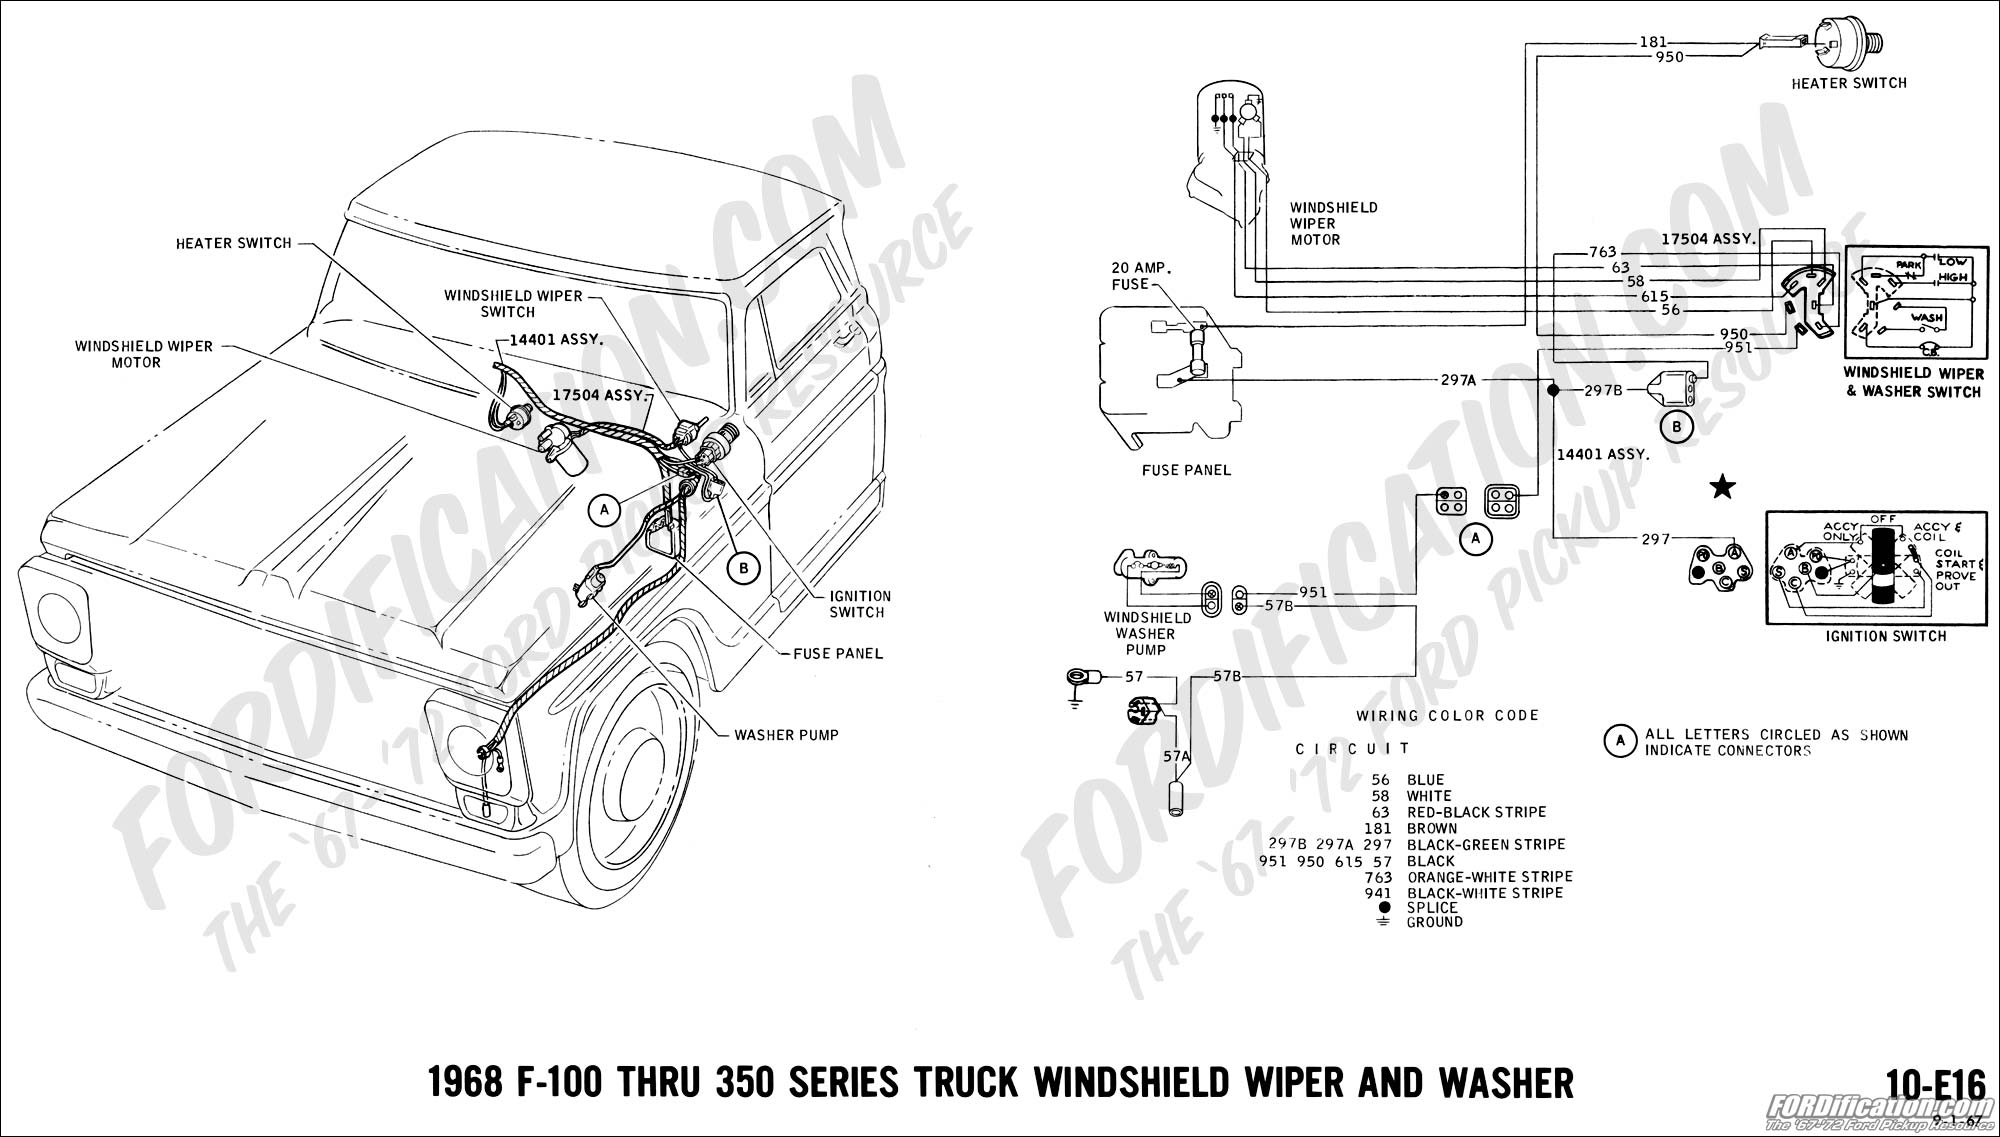 Steering Suspension Diagrams furthermore 1967 Mustang Wiring And Vacuum Diagrams together with Trl moreover 1024794 1979 F250 Ignition Switch likewise Discussion C13141 ds679408. on 1965 ford truck wiring diagram